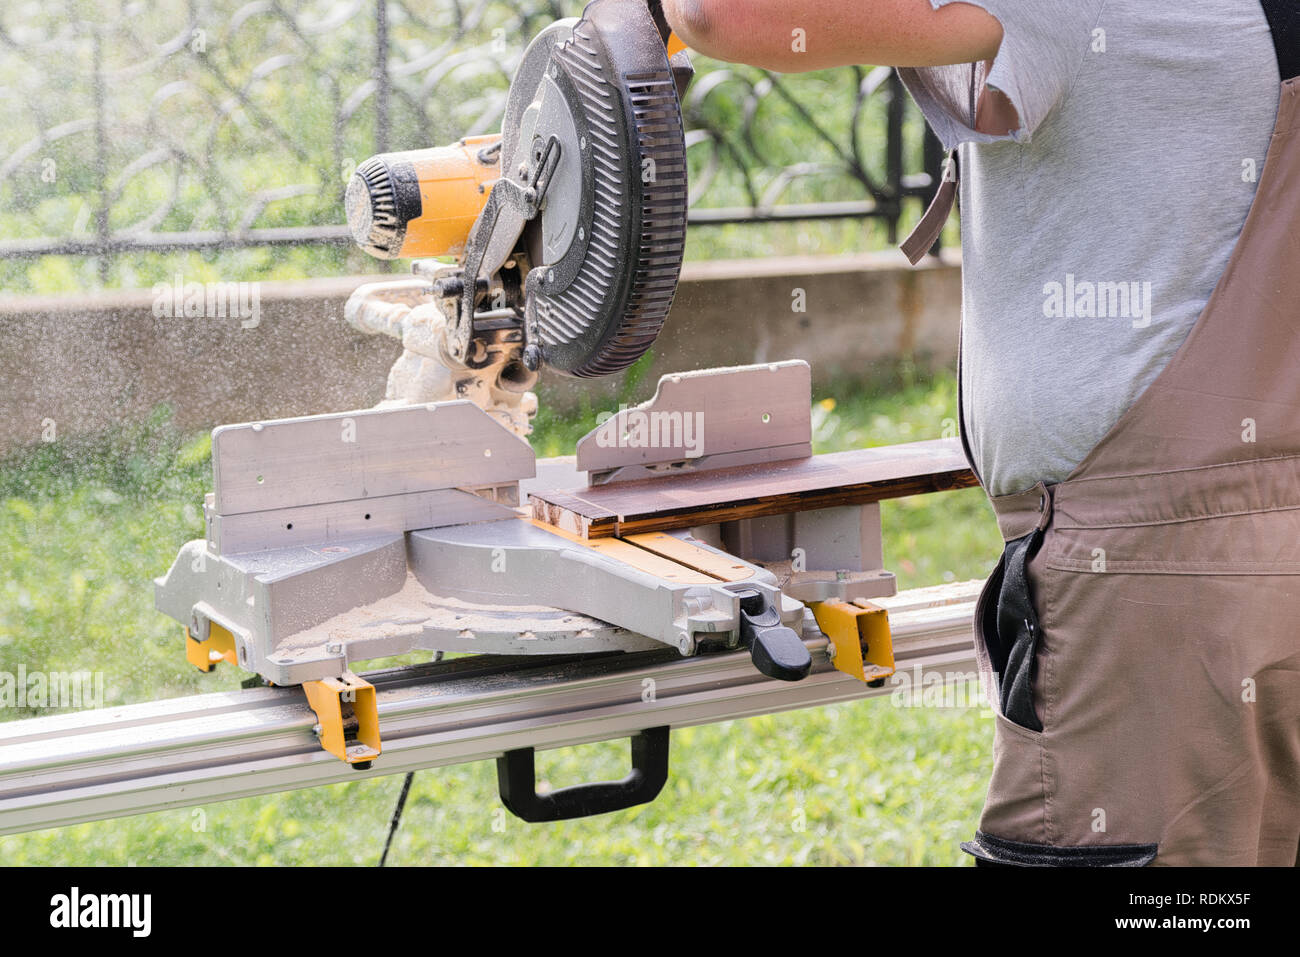 Master carpenter at work in the workshop outdoors. Carpenter hand sawing wood with table wood cutter saw - Stock Image